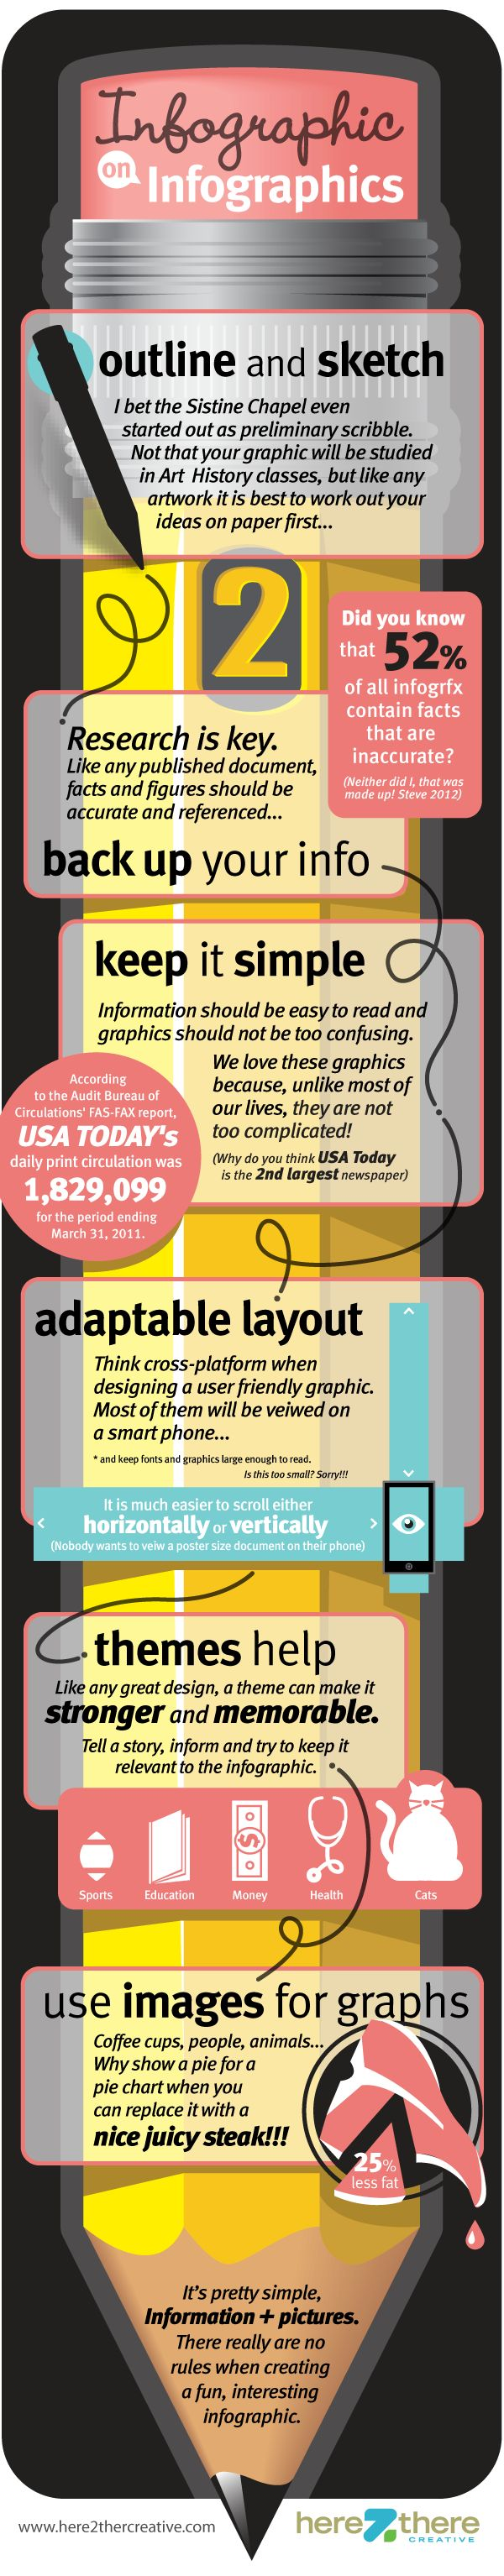 Who's not a sucker for a good infographic? After all, they look fun and are easy to read, enabling viewers to digest complex information in a way that doesn't bring on cognitive overload.